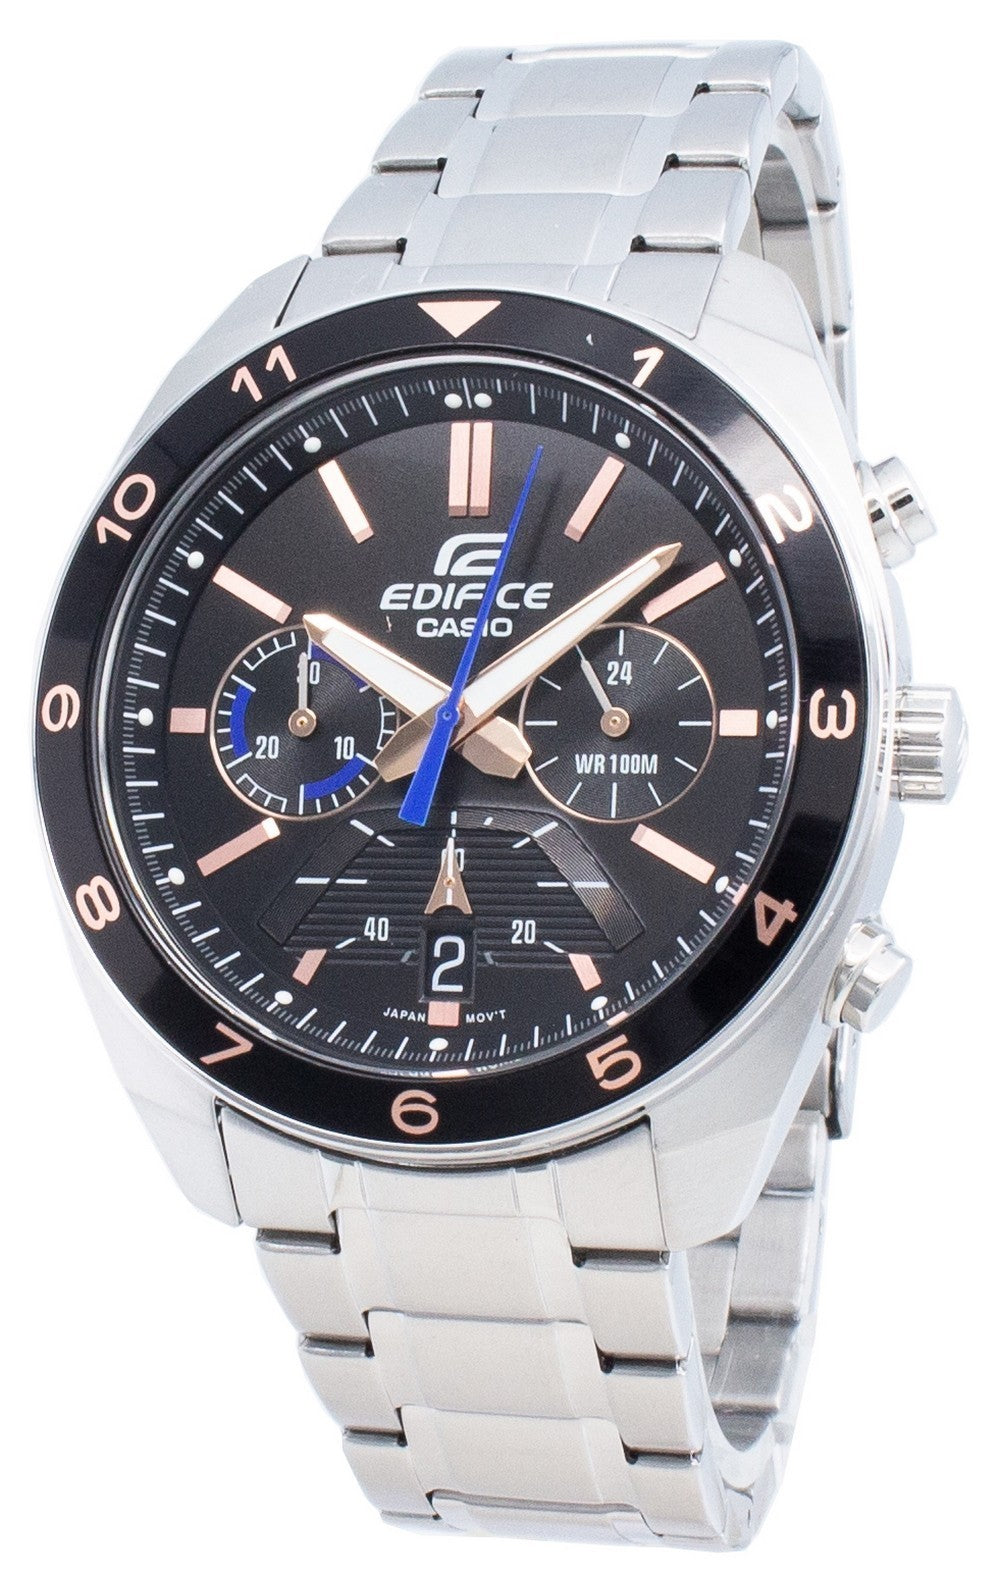 Casio Edifice EFV-590D-1AV Chronograph Men's Watch